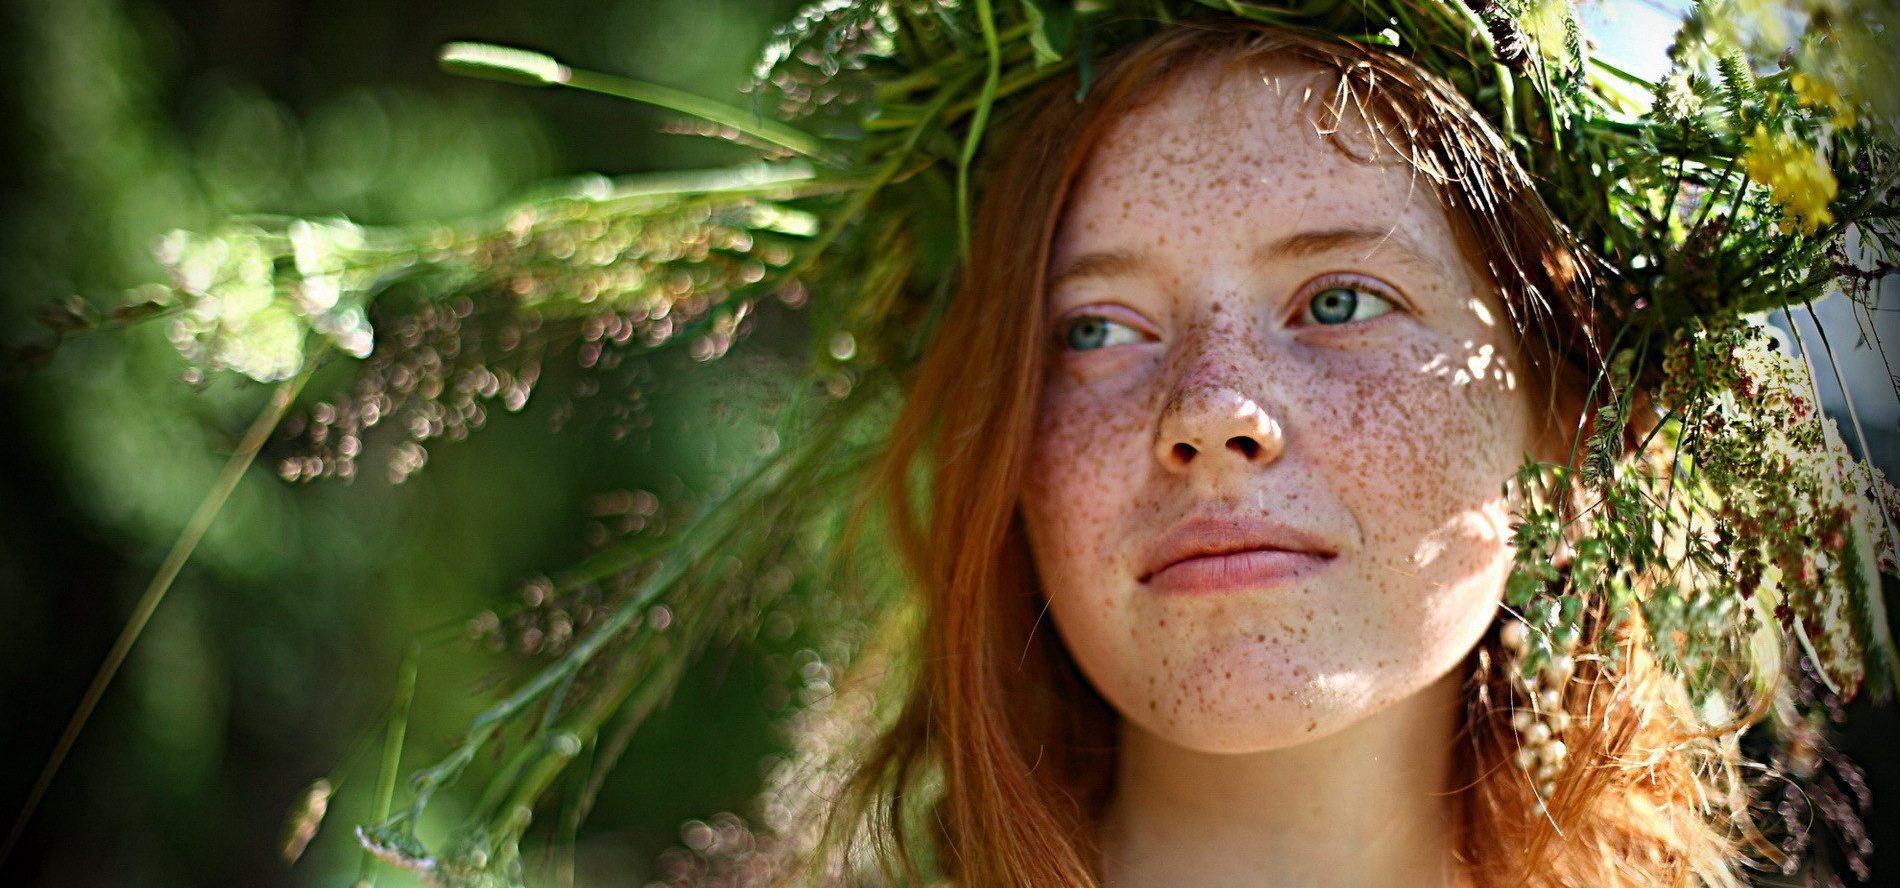 face-woman-redhead-freckles-incredible-hd-wallpaper-142967659229